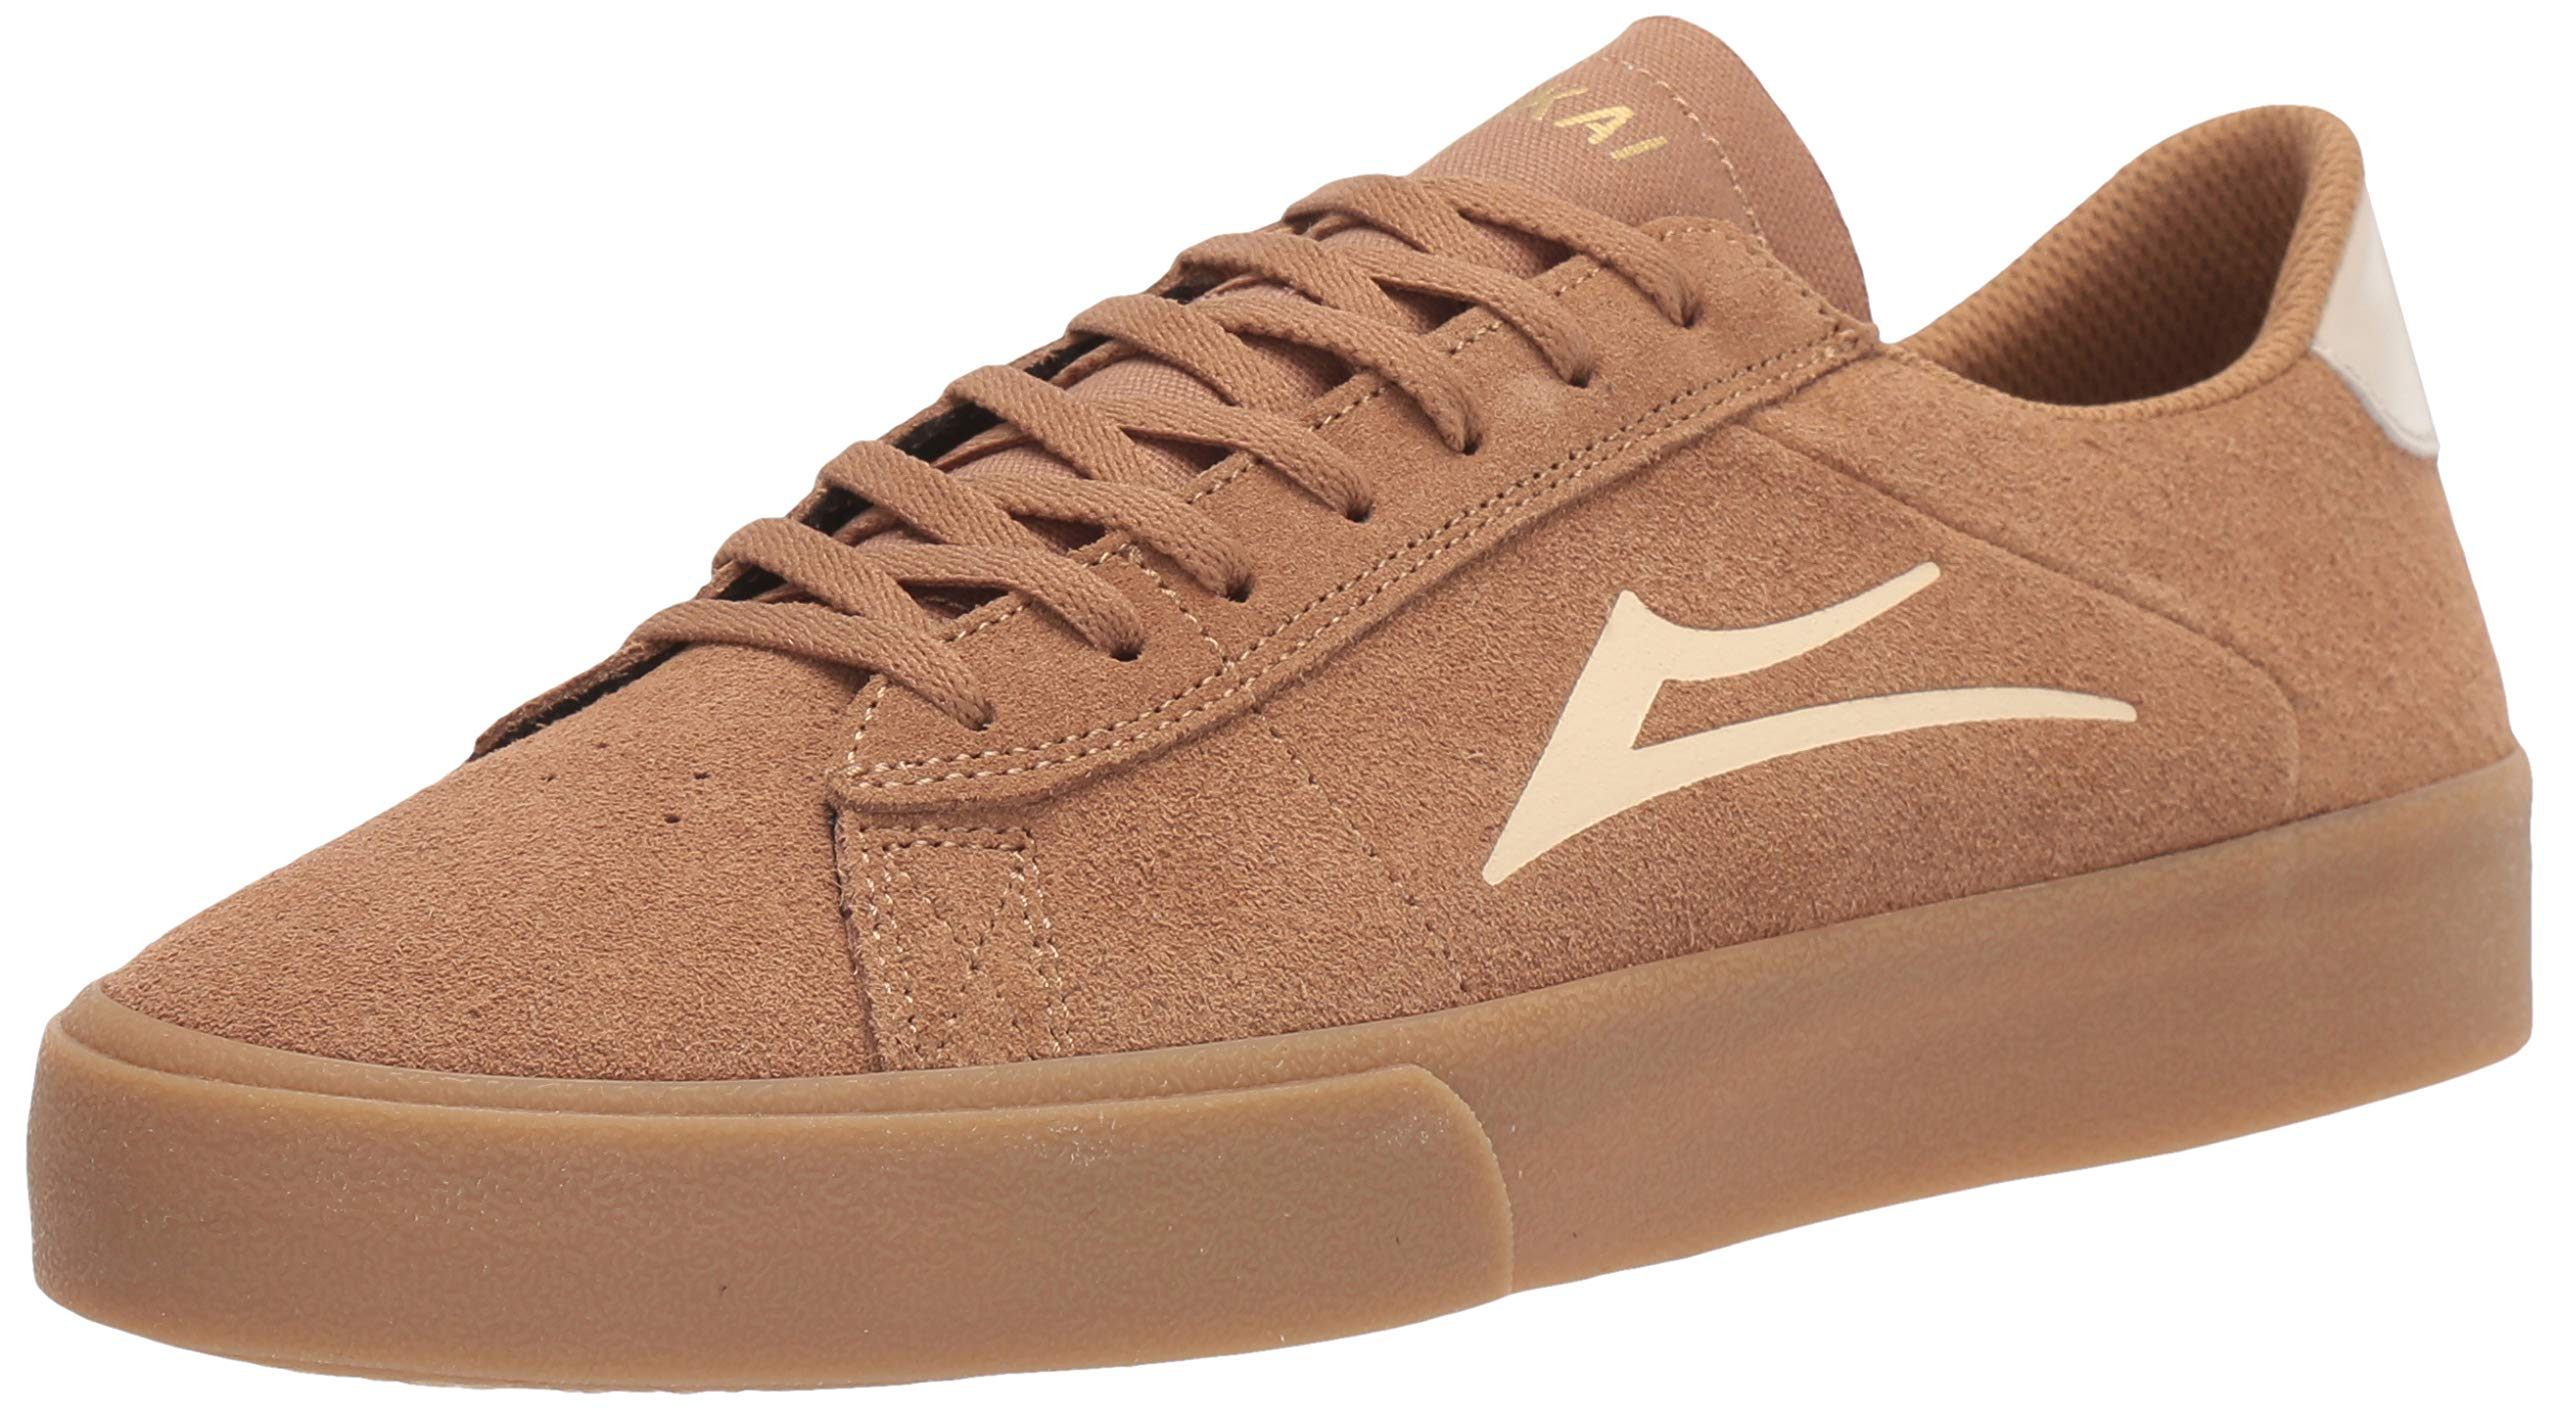 Lakai Limited Footwear Mens Newport Skate Shoe, Tan/Gum Suede, 12 M US by Lakai Limited Footwear Mens